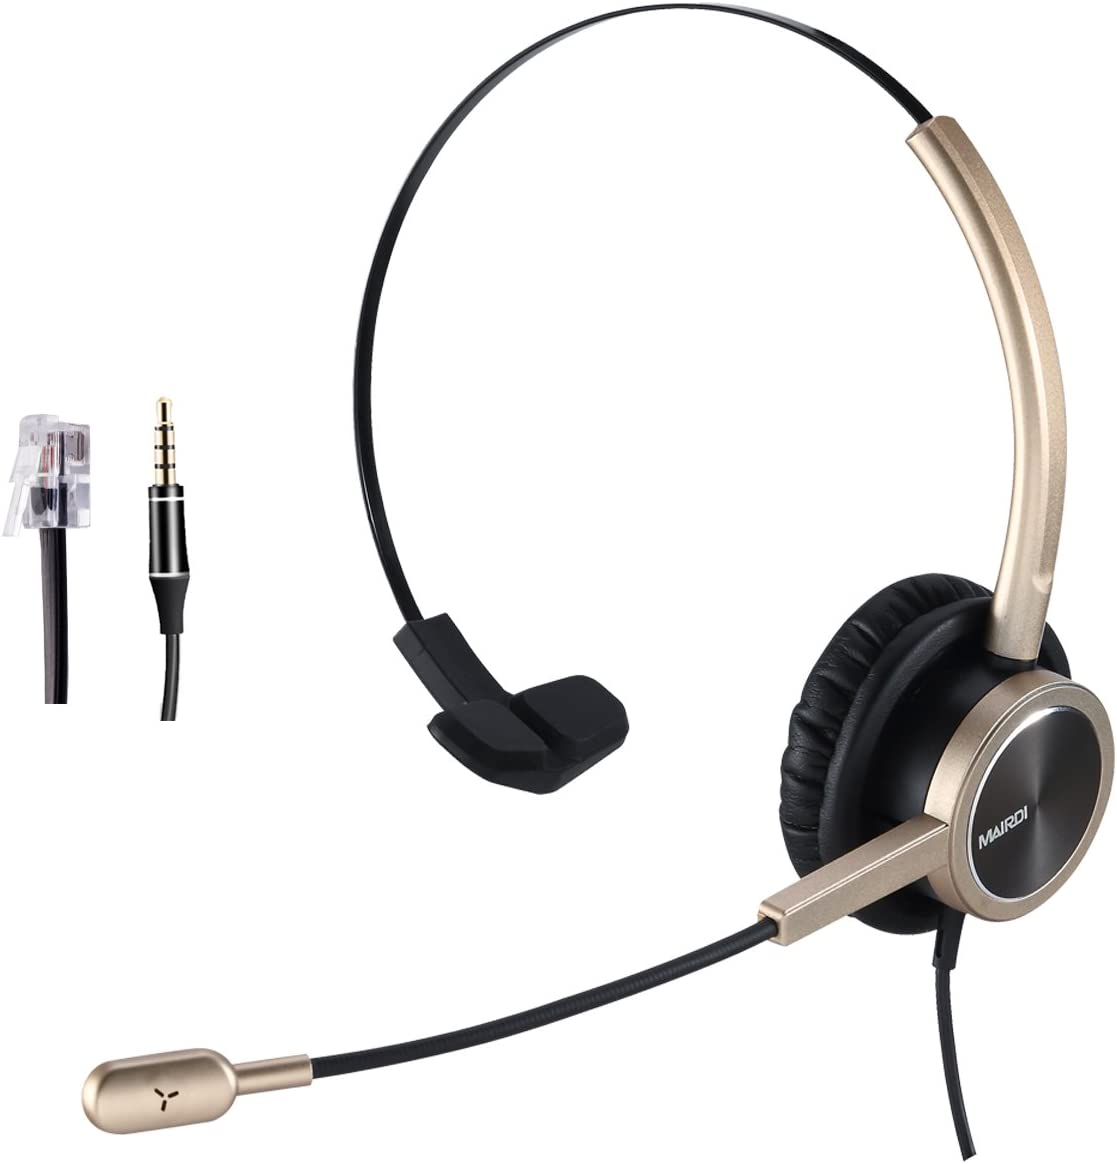 Phone Headset RJ9 for Office Call Center with Noise Cancelling Mic with Extra 3.5mm Connetor for Mobiles Compatible with Avaya Nortel Aastra Toshiba Phone